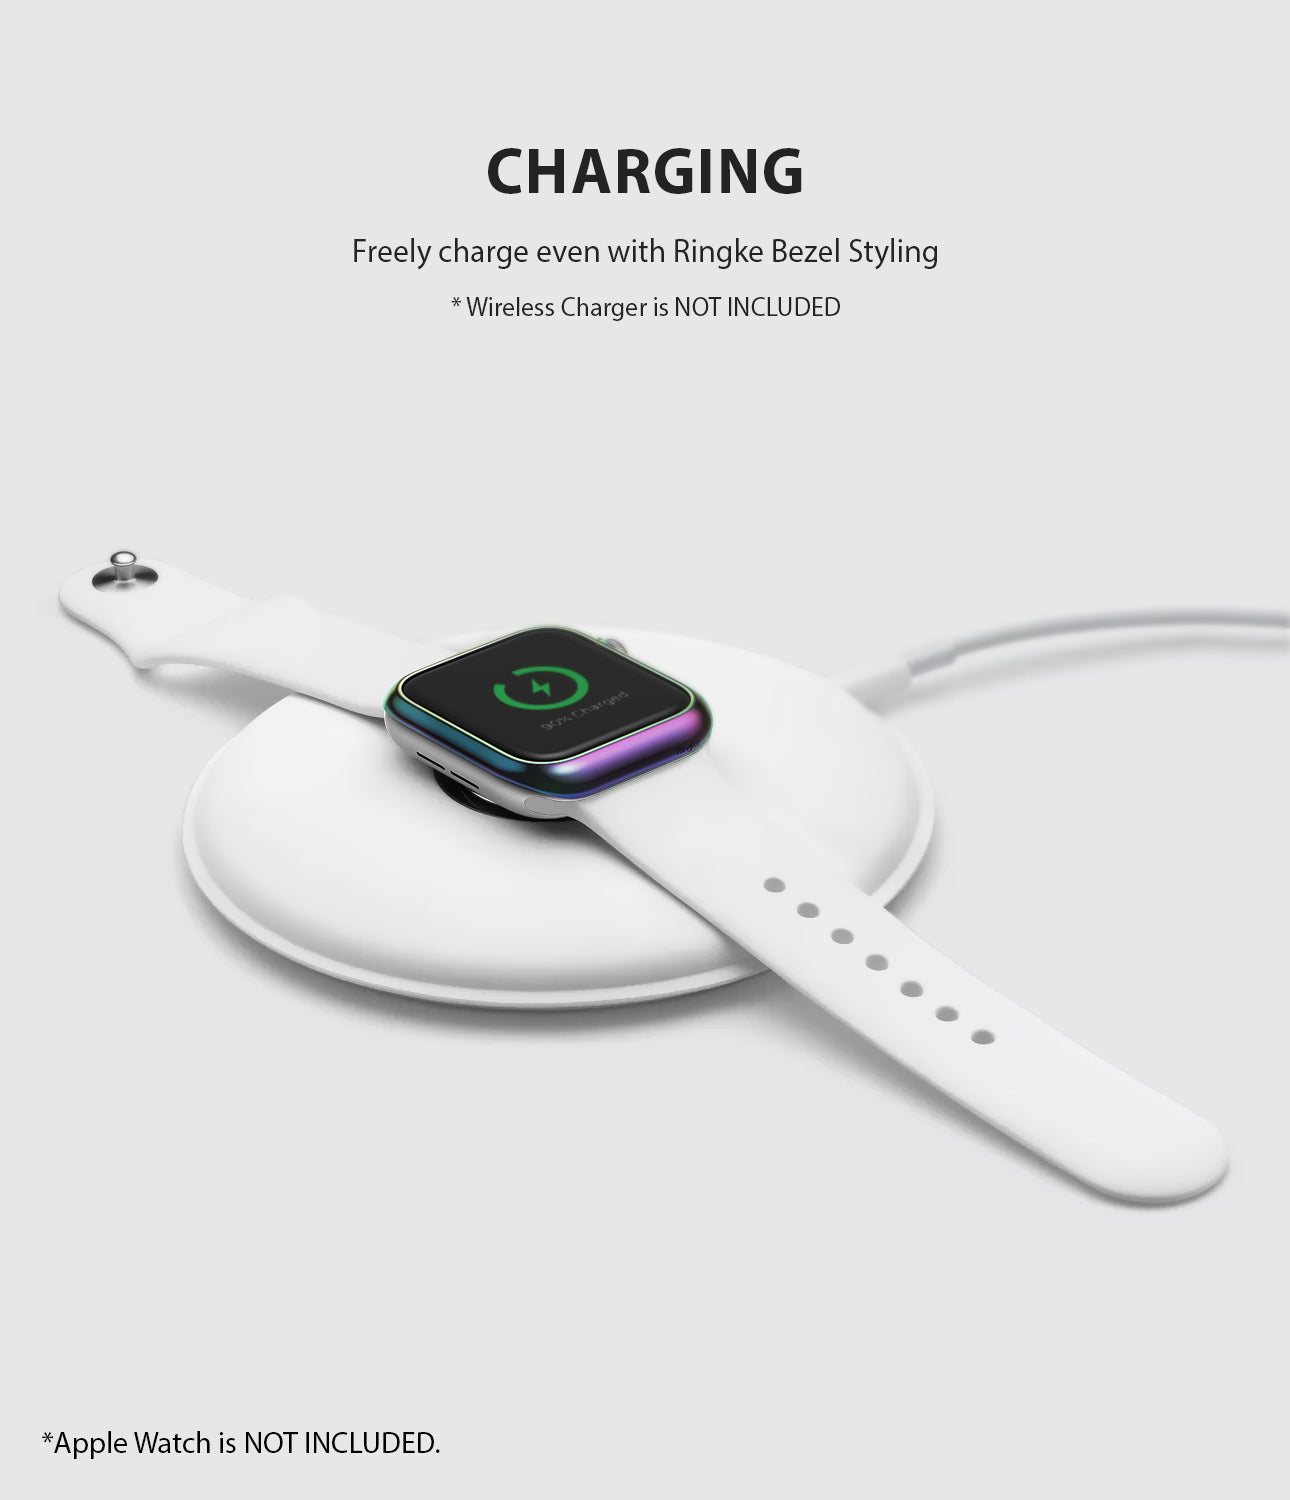 apple watch 3 2 1 38mm case ringke bezel styling stainless steel frame cover 38-08 wireless charging